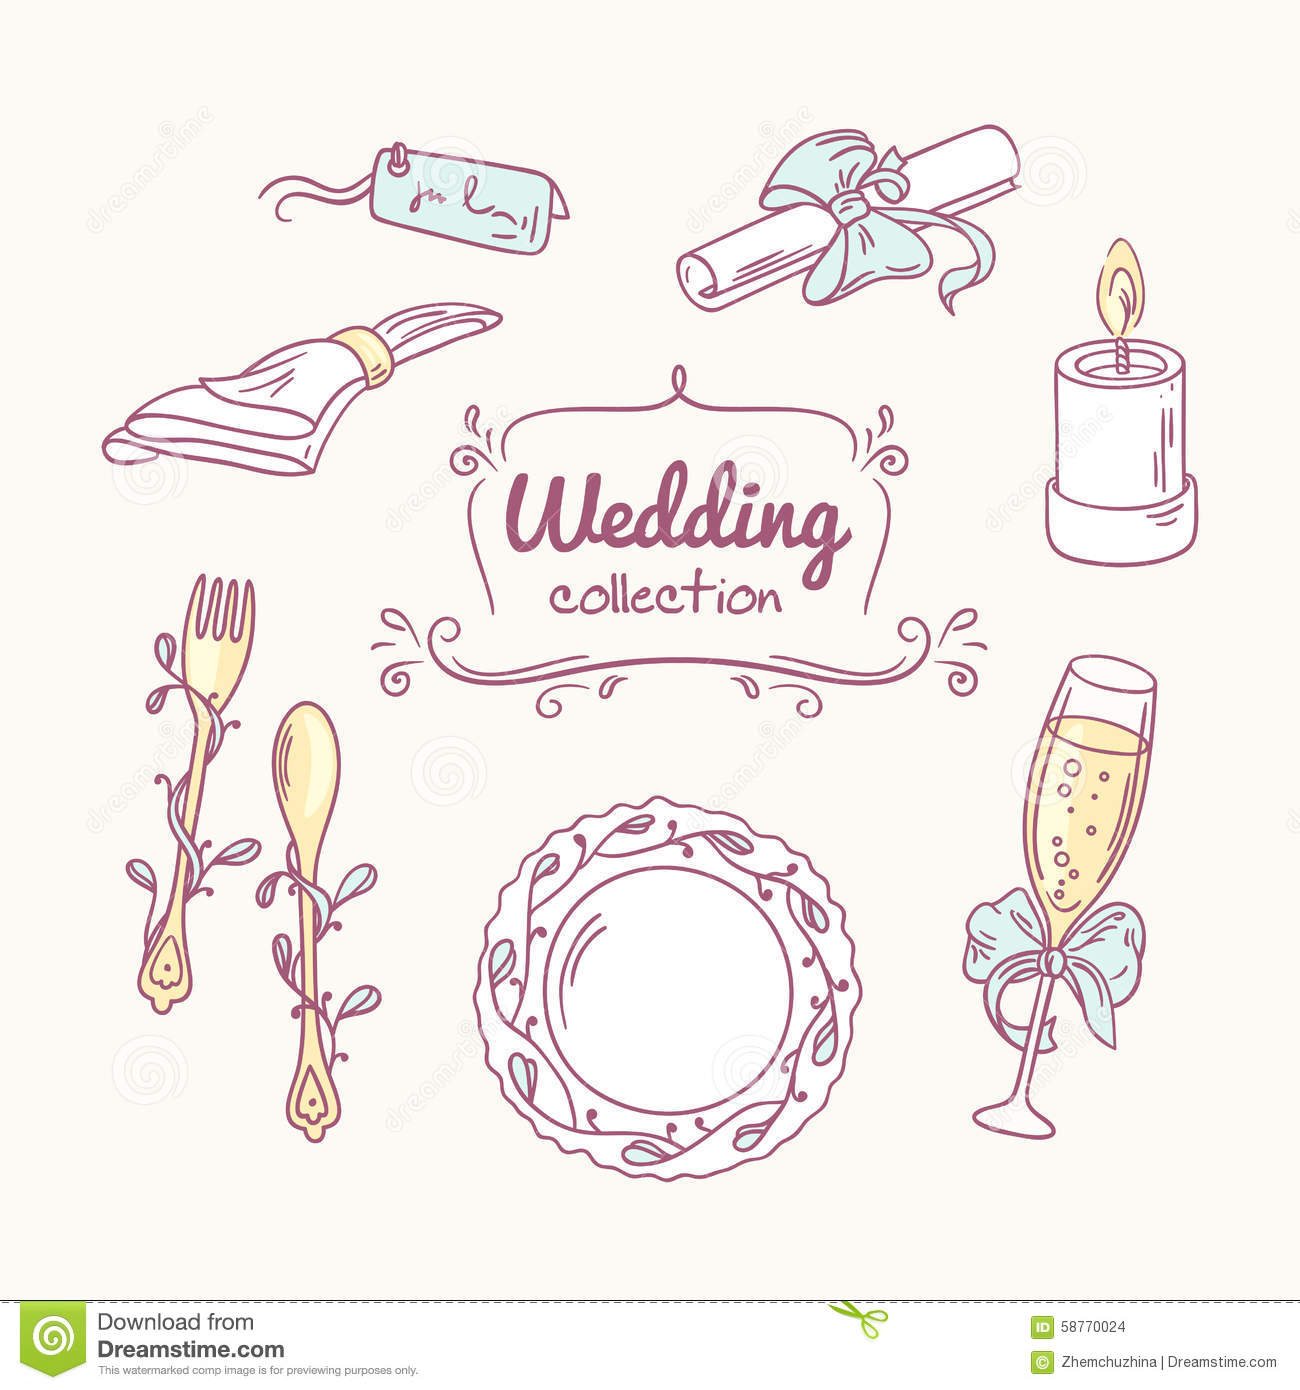 Wedding Table Decoration In Doodle Style. Hand Drawn Celebration.